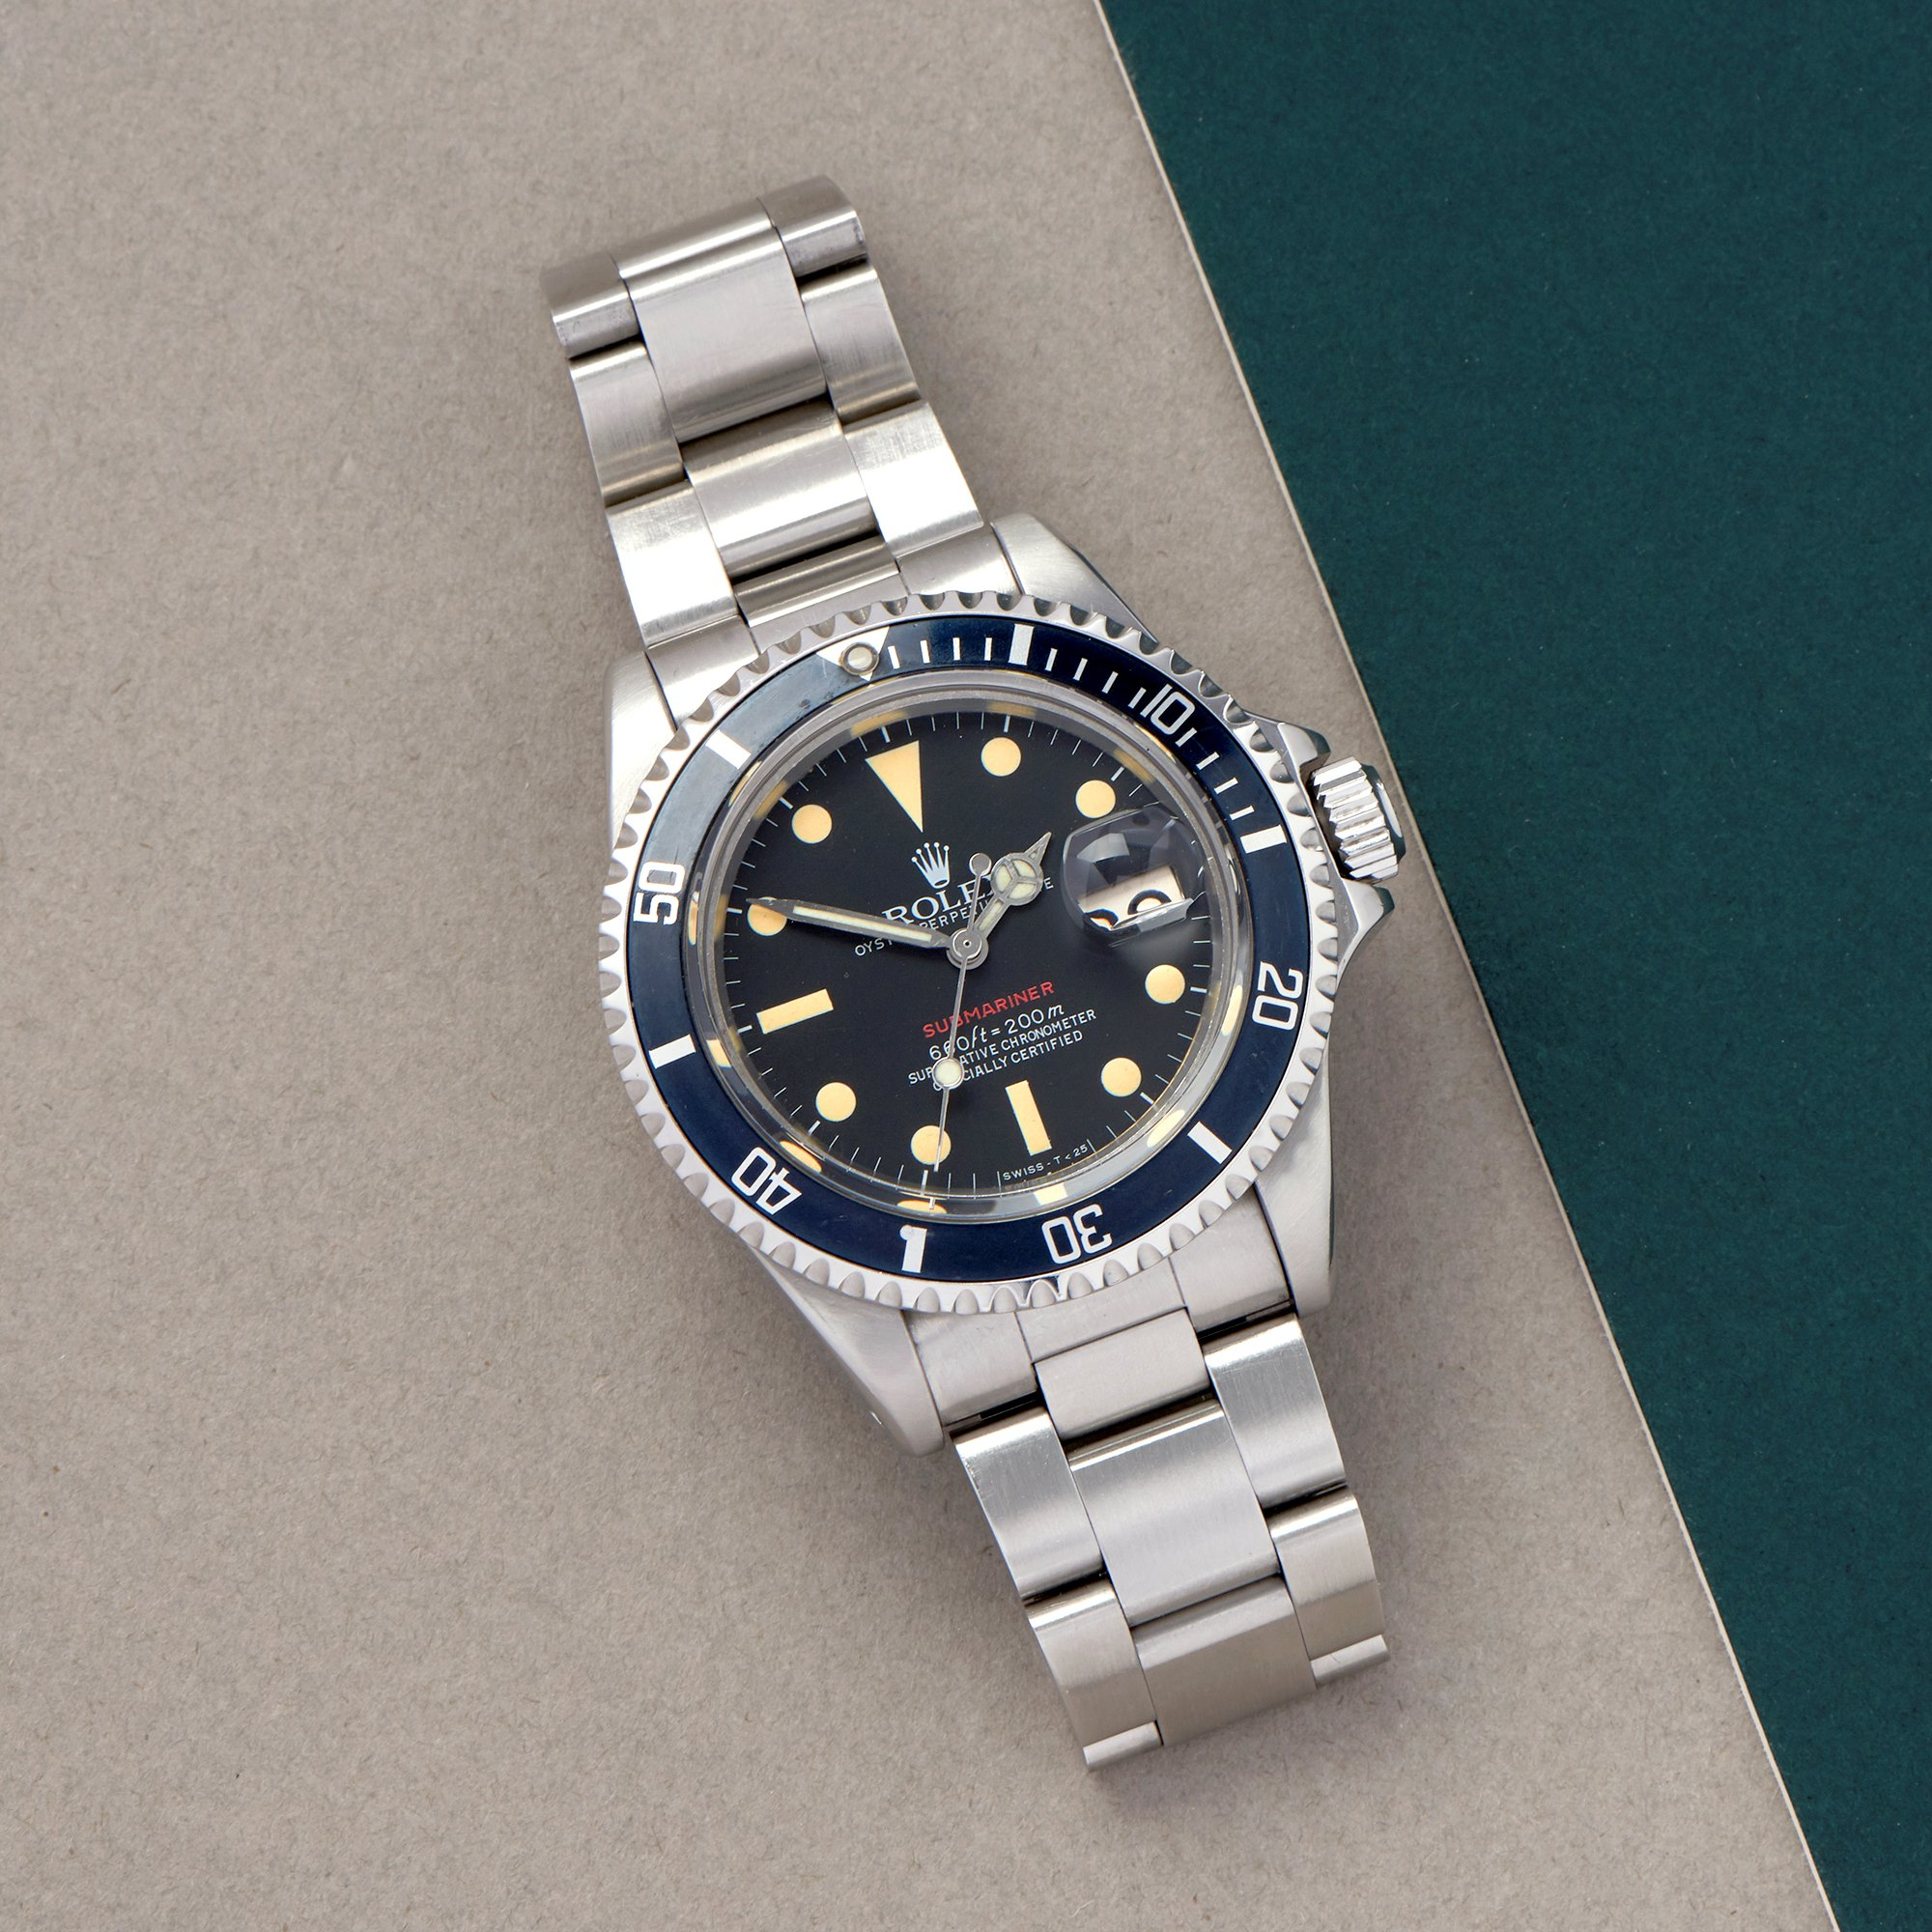 Rolex Submariner Date Single Red Stainless Steel 1680